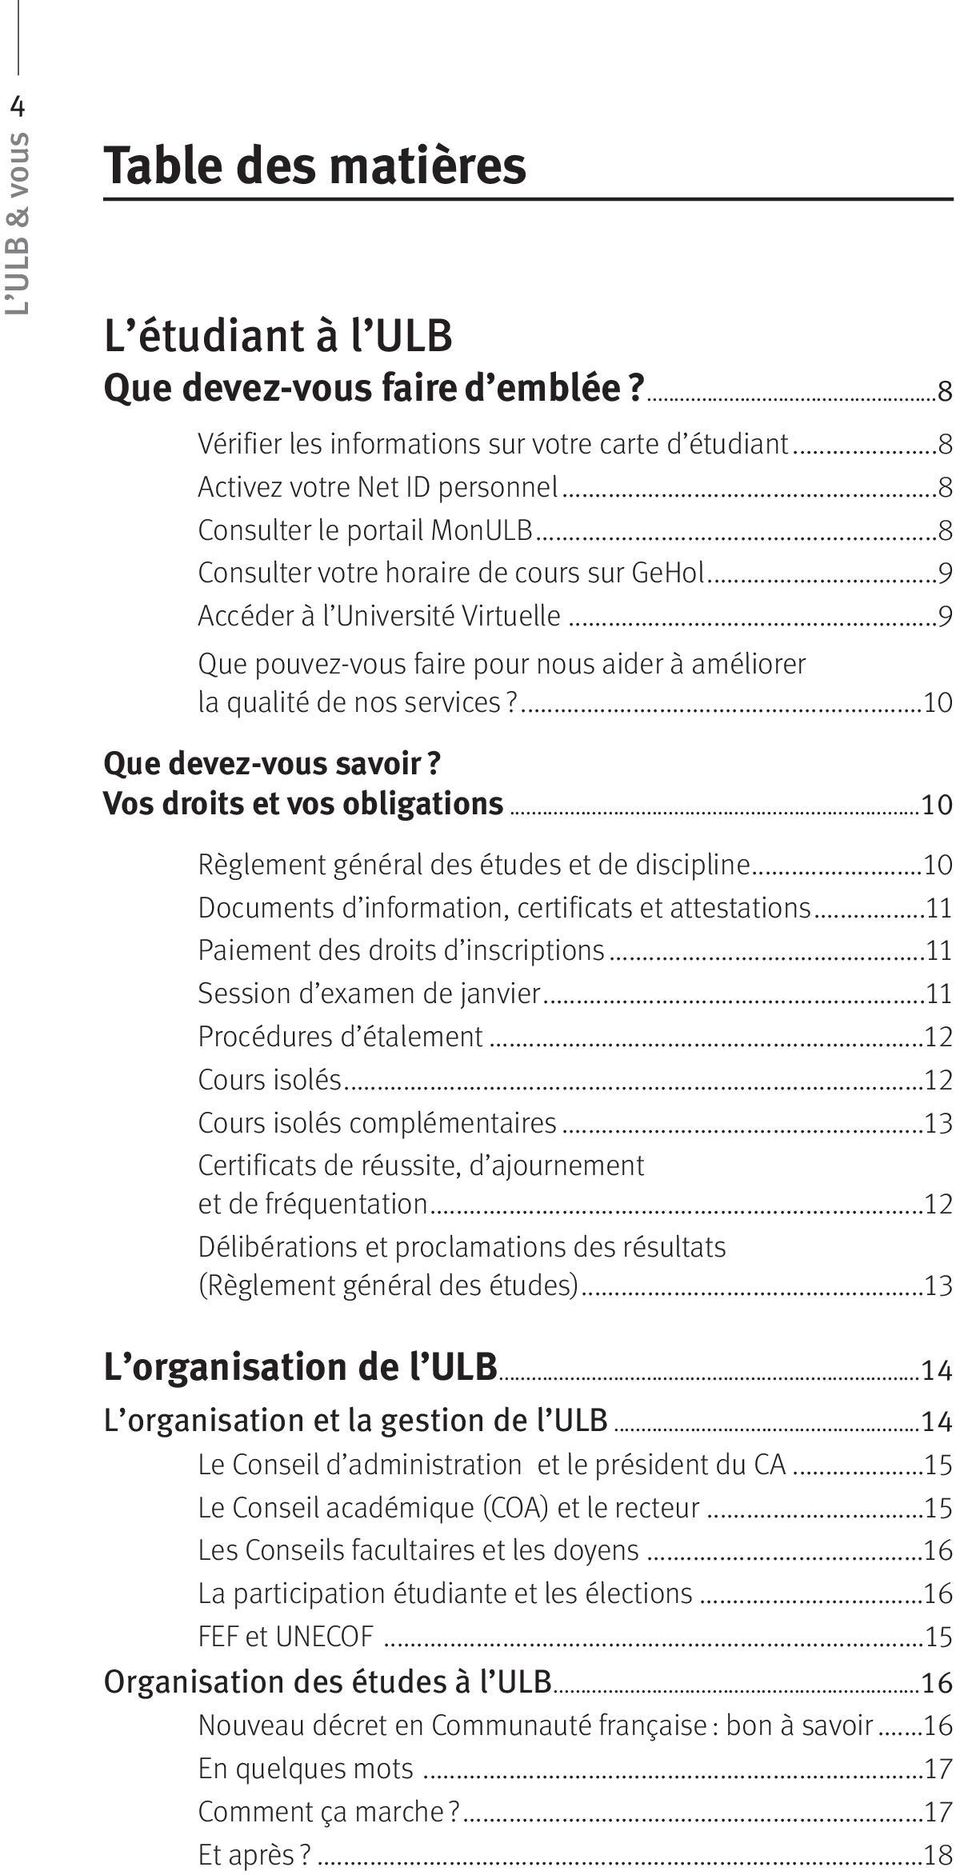 Vos droits et vos obligations...10 Règlement général des études et de discipline...10 Documents d information, certificats et attestations...11 Paiement des droits d inscriptions.